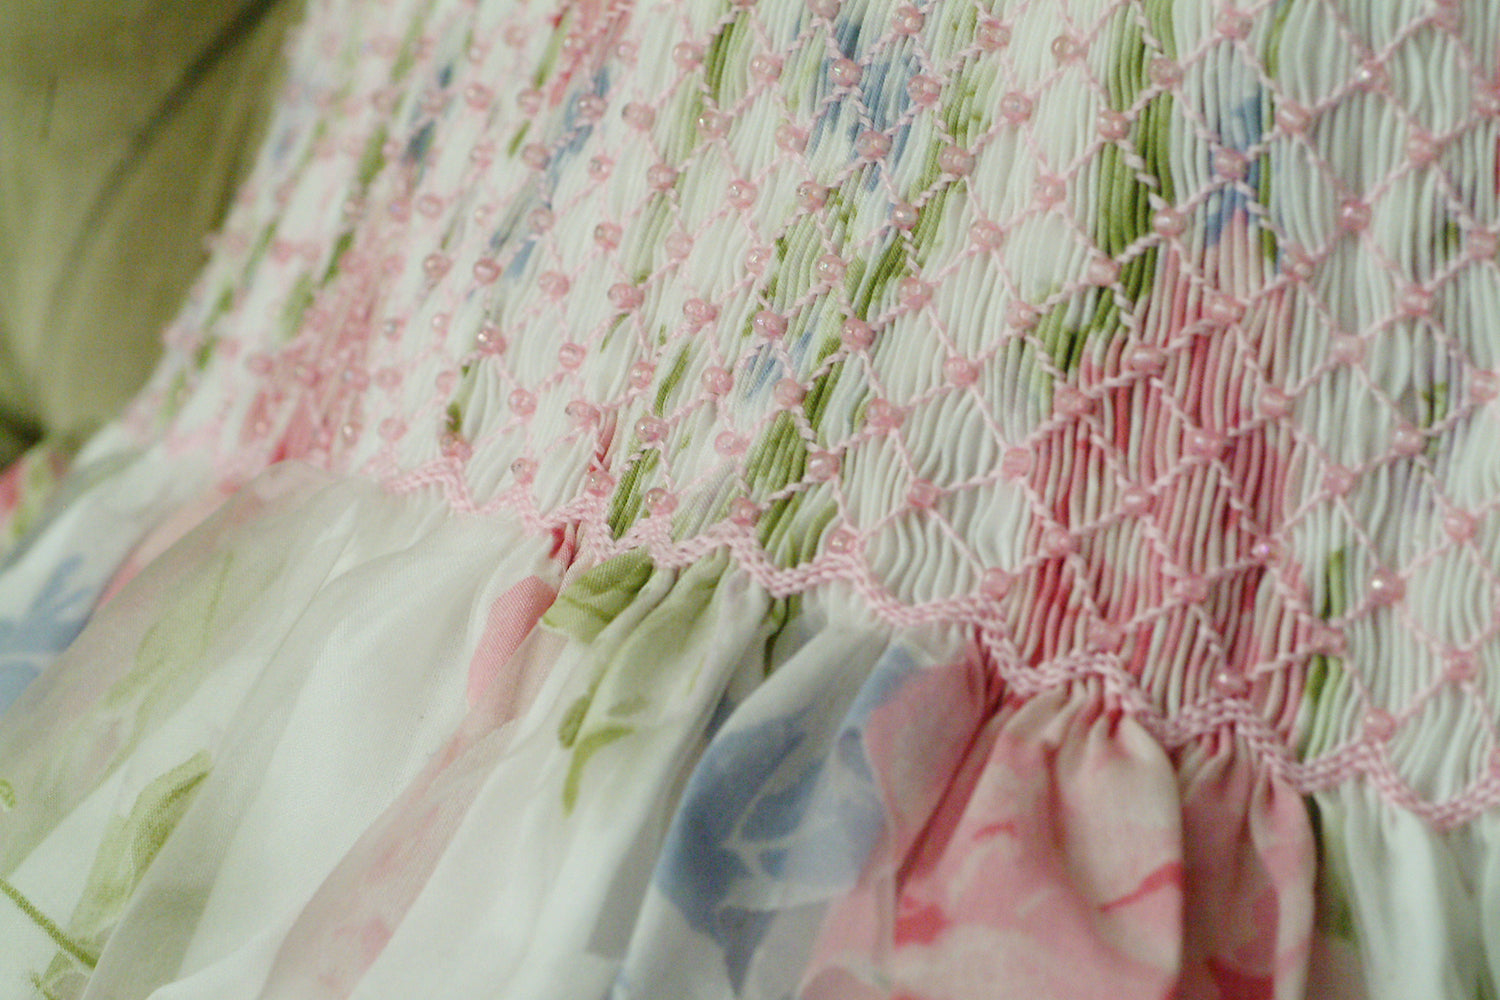 Handmade party pearled smocking - The story of our brand and know-how : the Charlotte sy Dimby design process